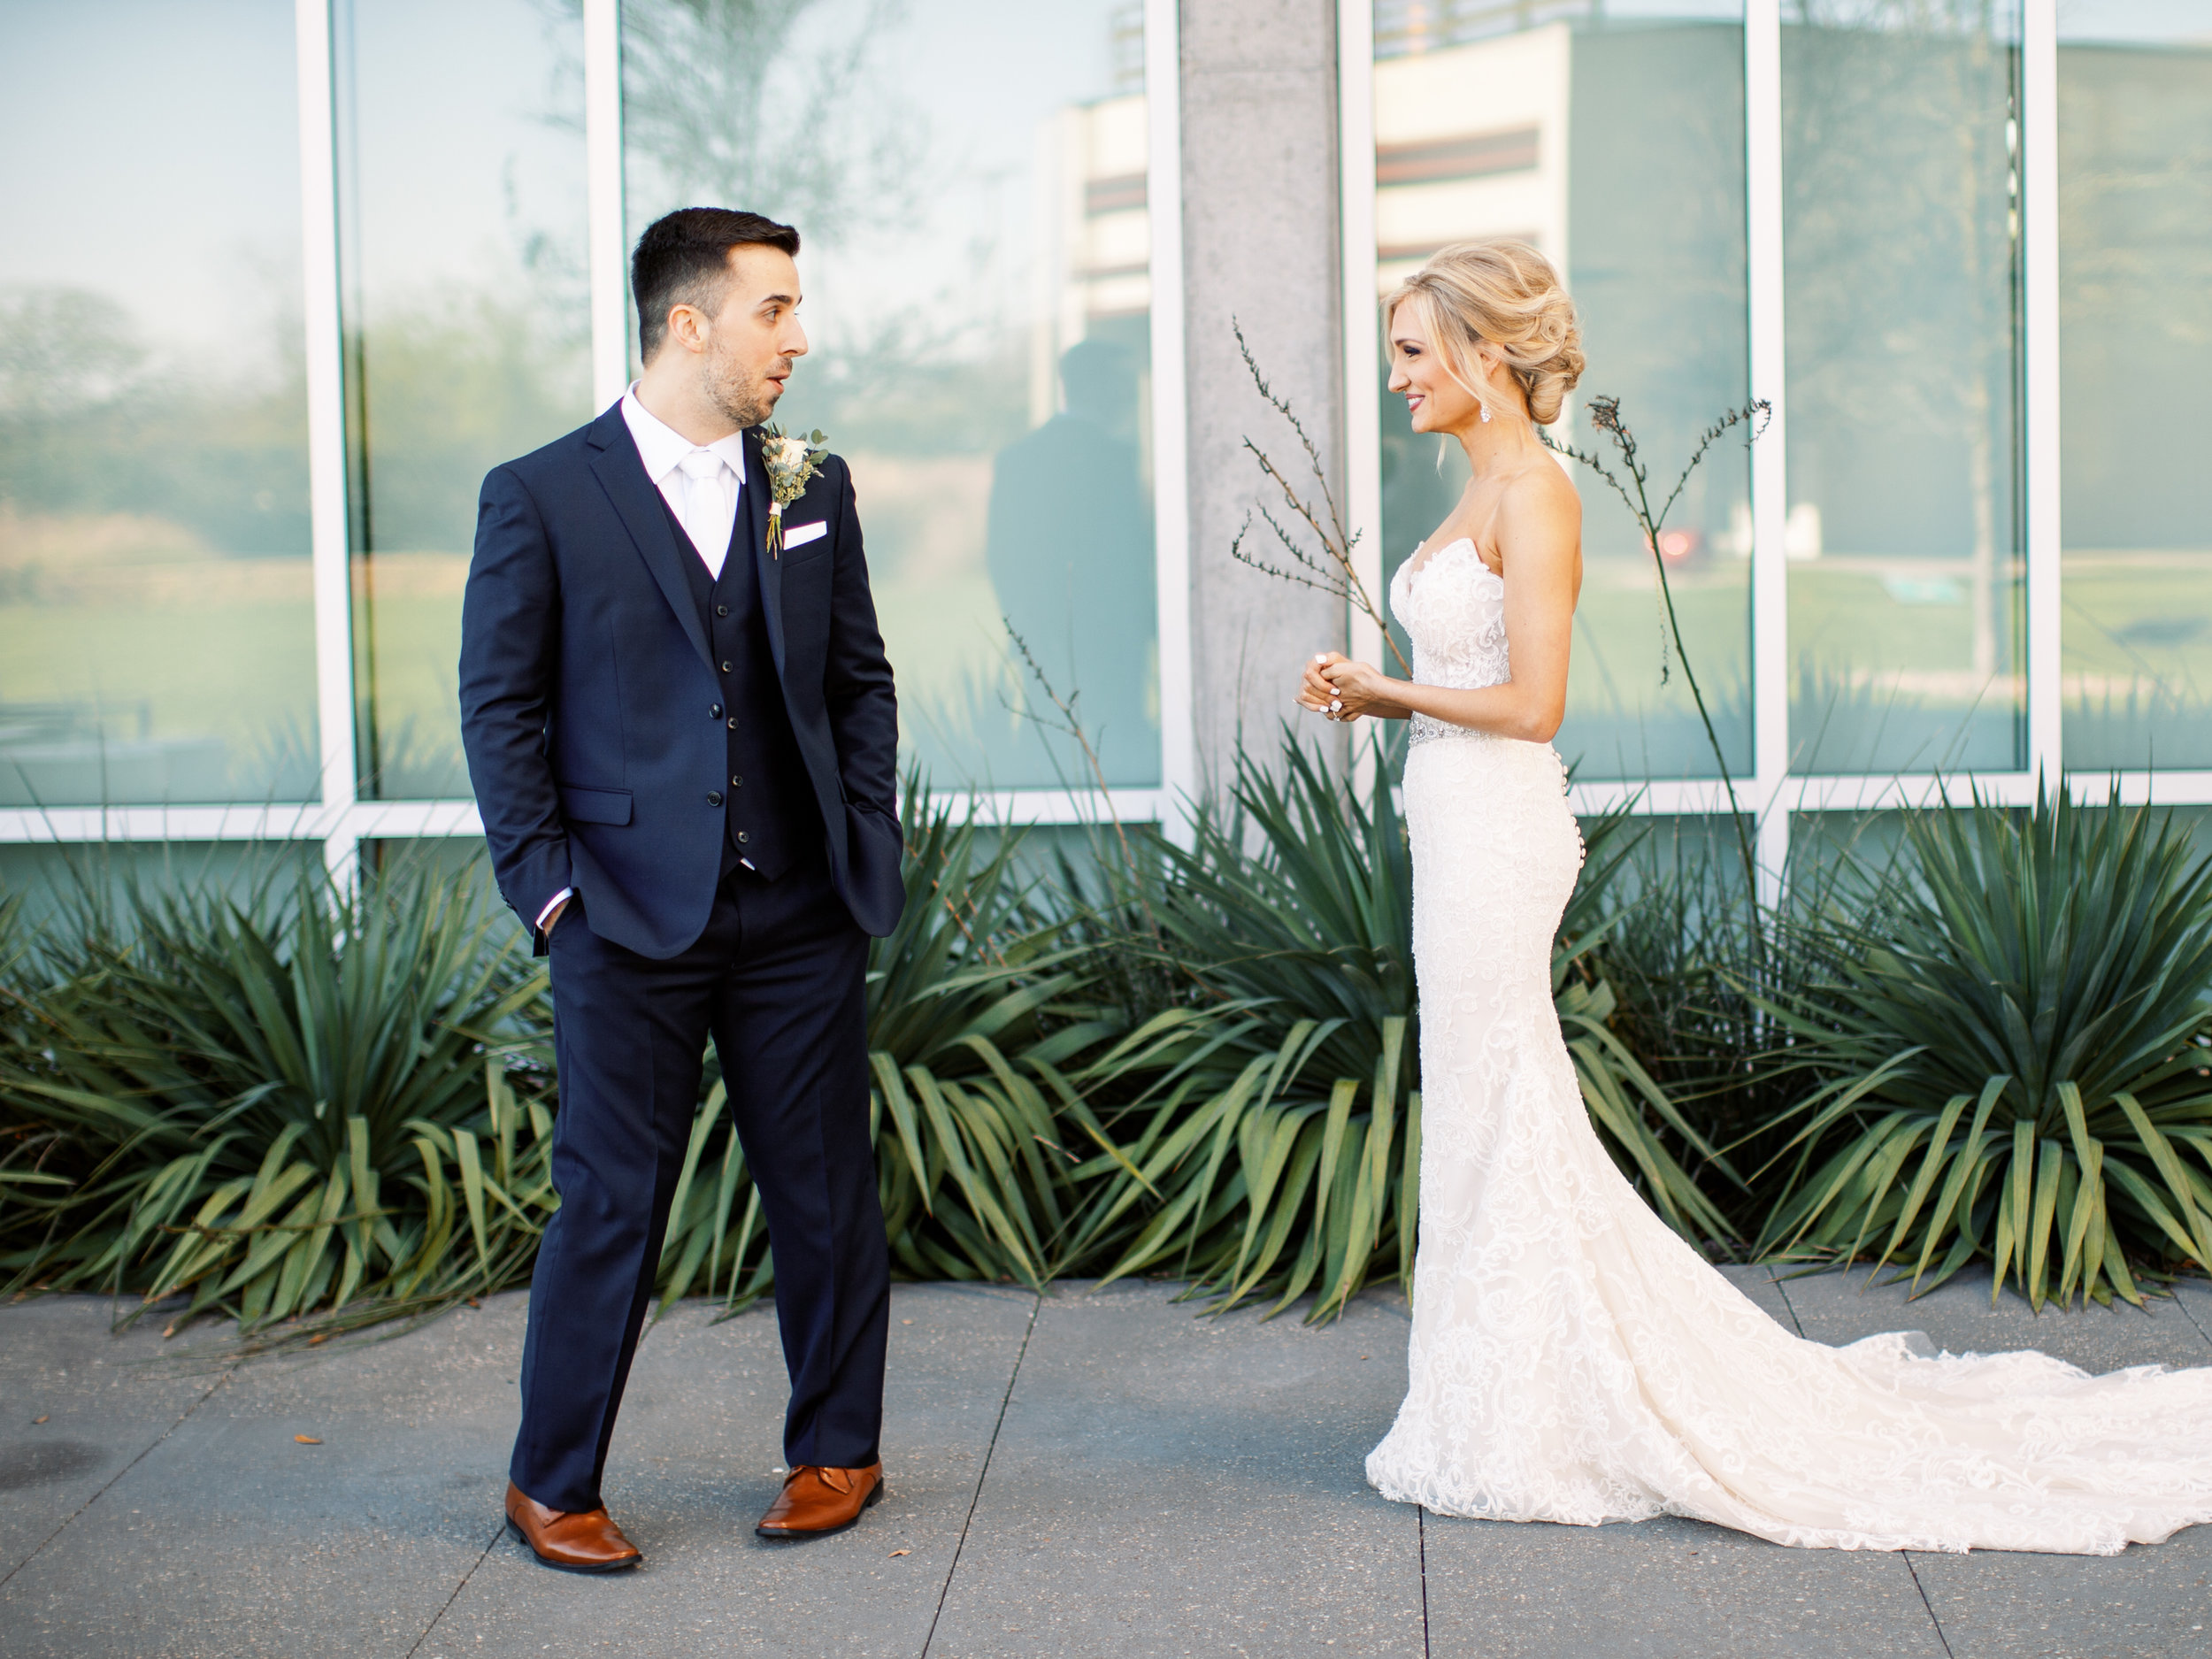 First look with groom wedding day california florida + destination planner coordinator epoch co + hannah mayson film photographer